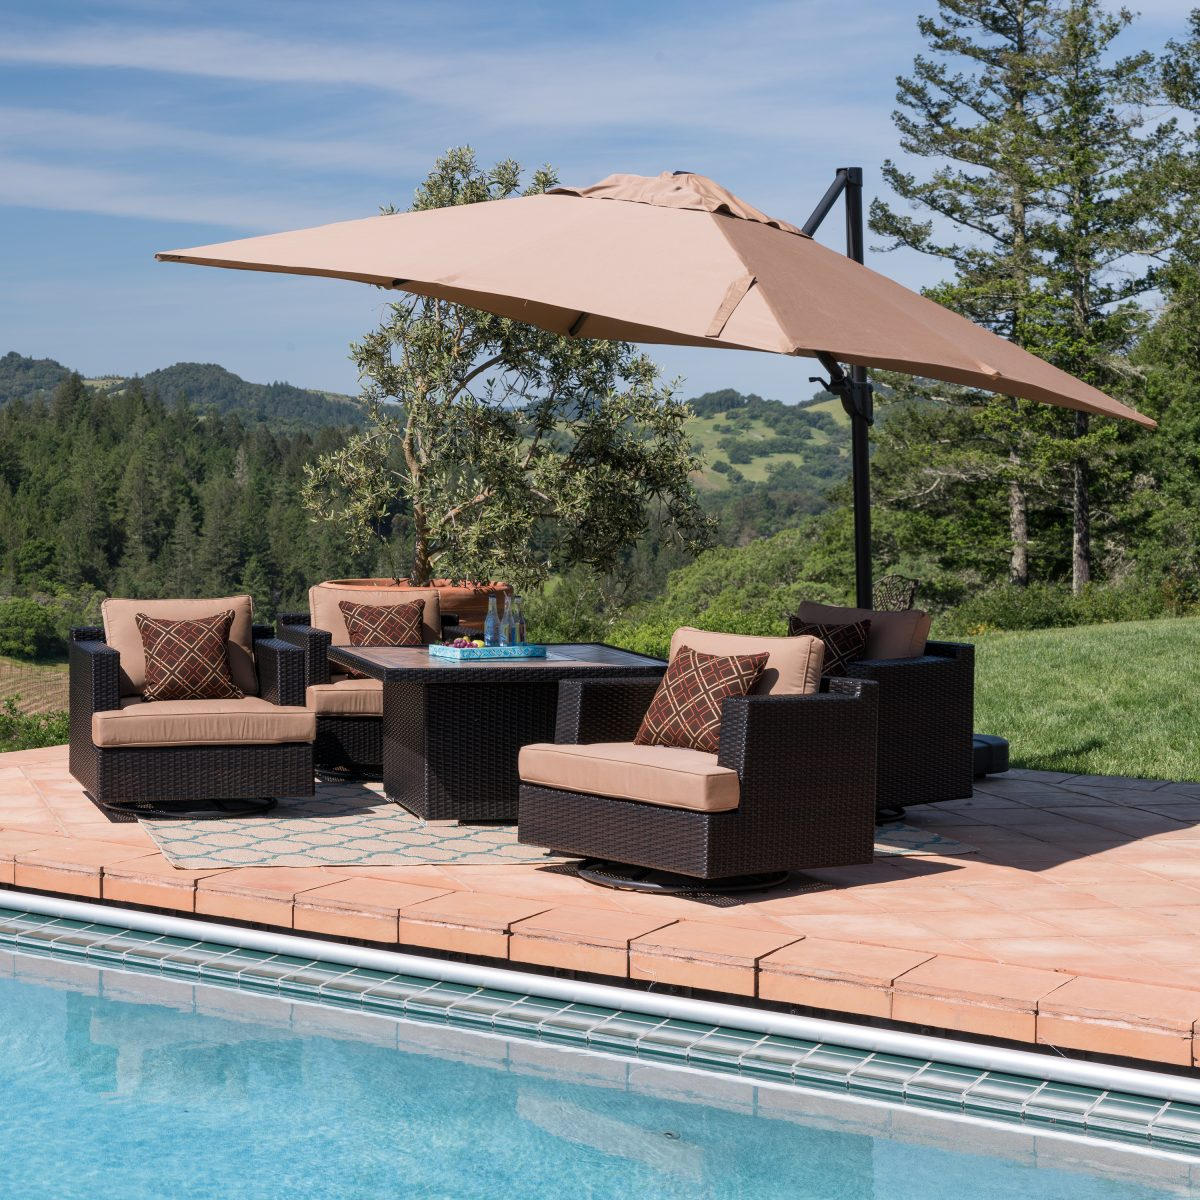 how to choose a patio umbrella - style